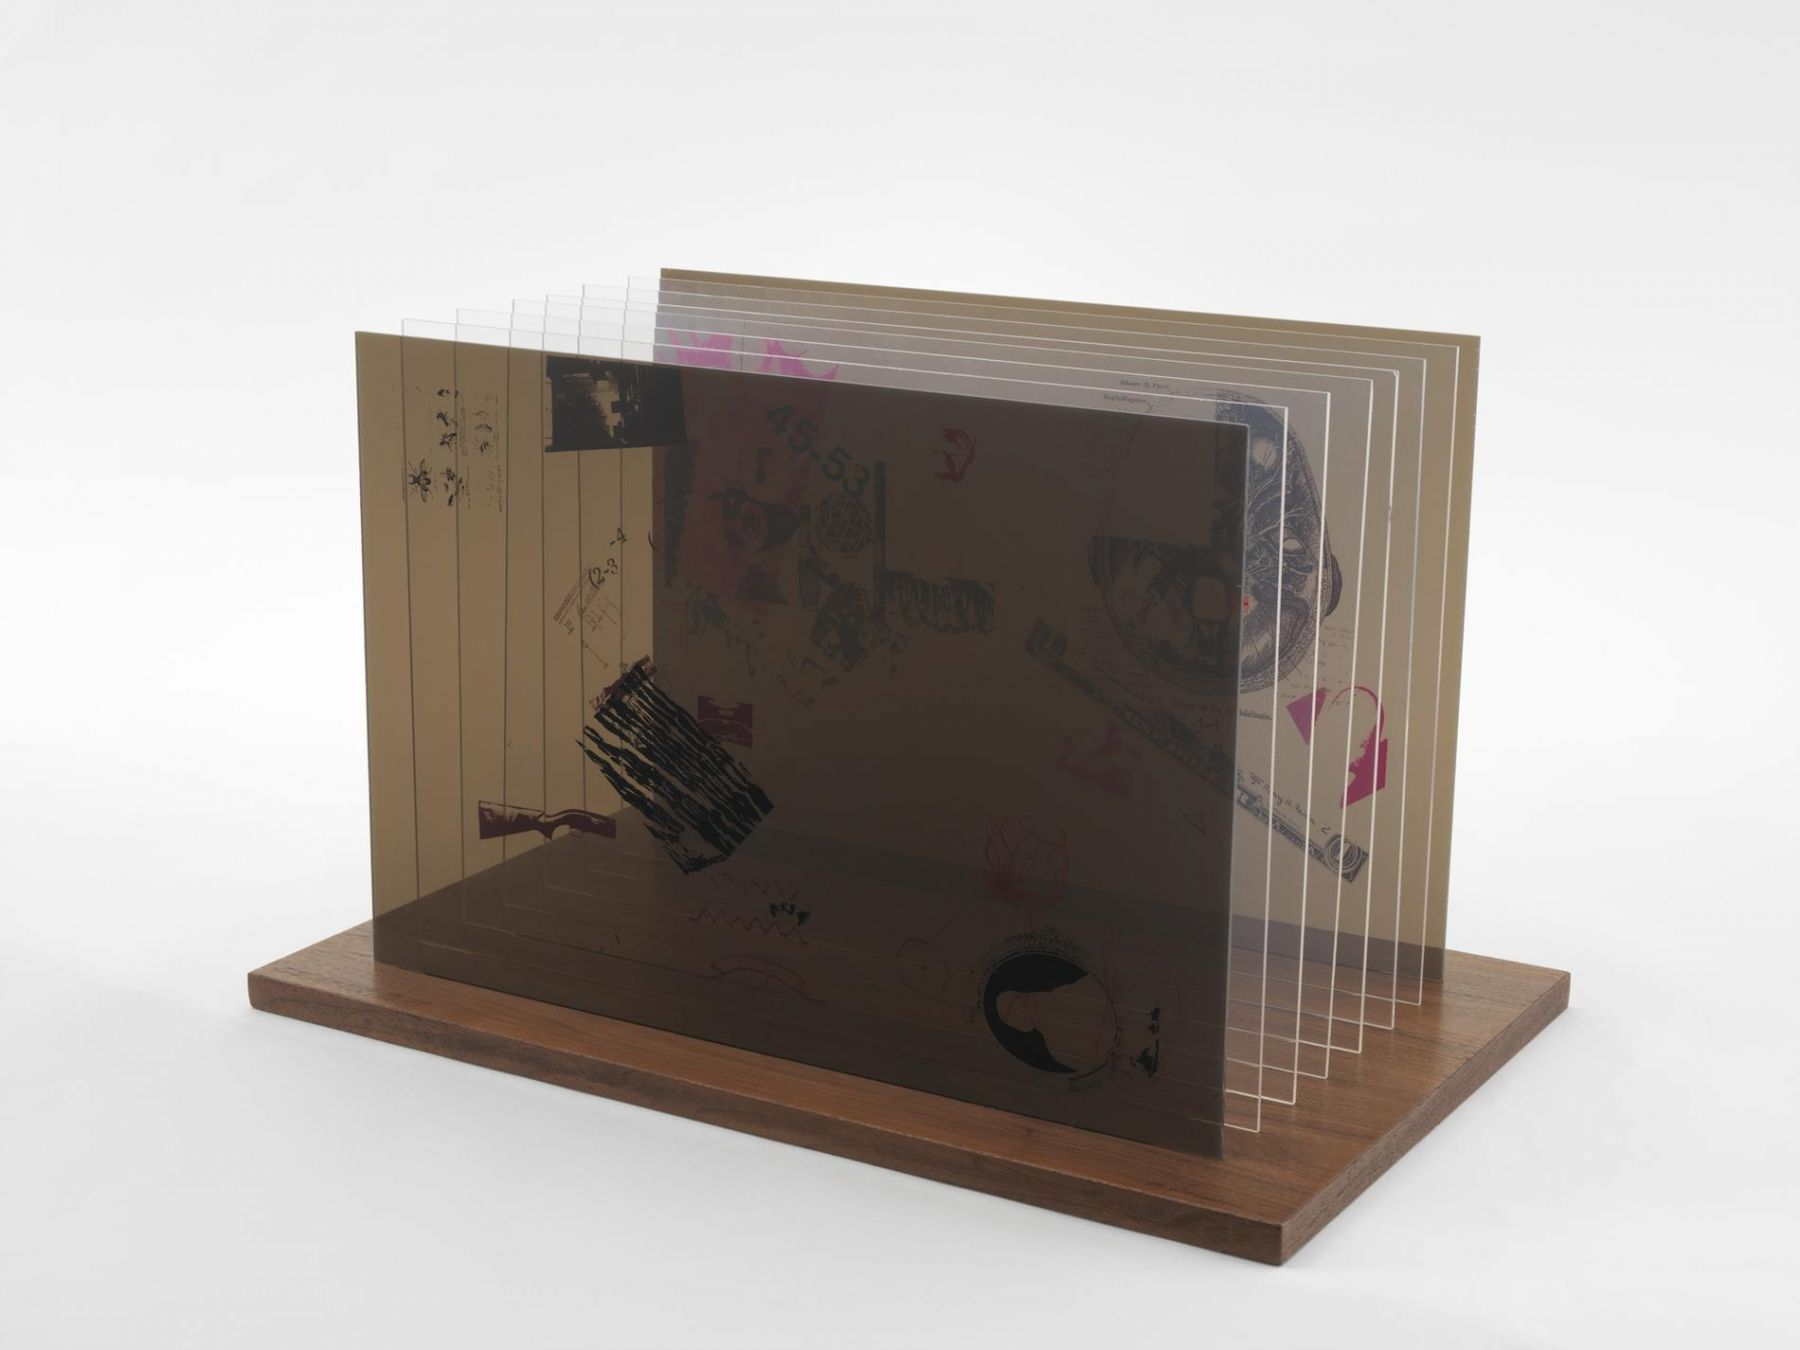 , JOHN CAGENot Wanting to Say Anything About Marcel Plexigram VIII,1969Screenprint on eight Plexiglas panels with walnut base14 x 20 x 1/8 in. (35.6 x 50.8 x 0.3 cm)